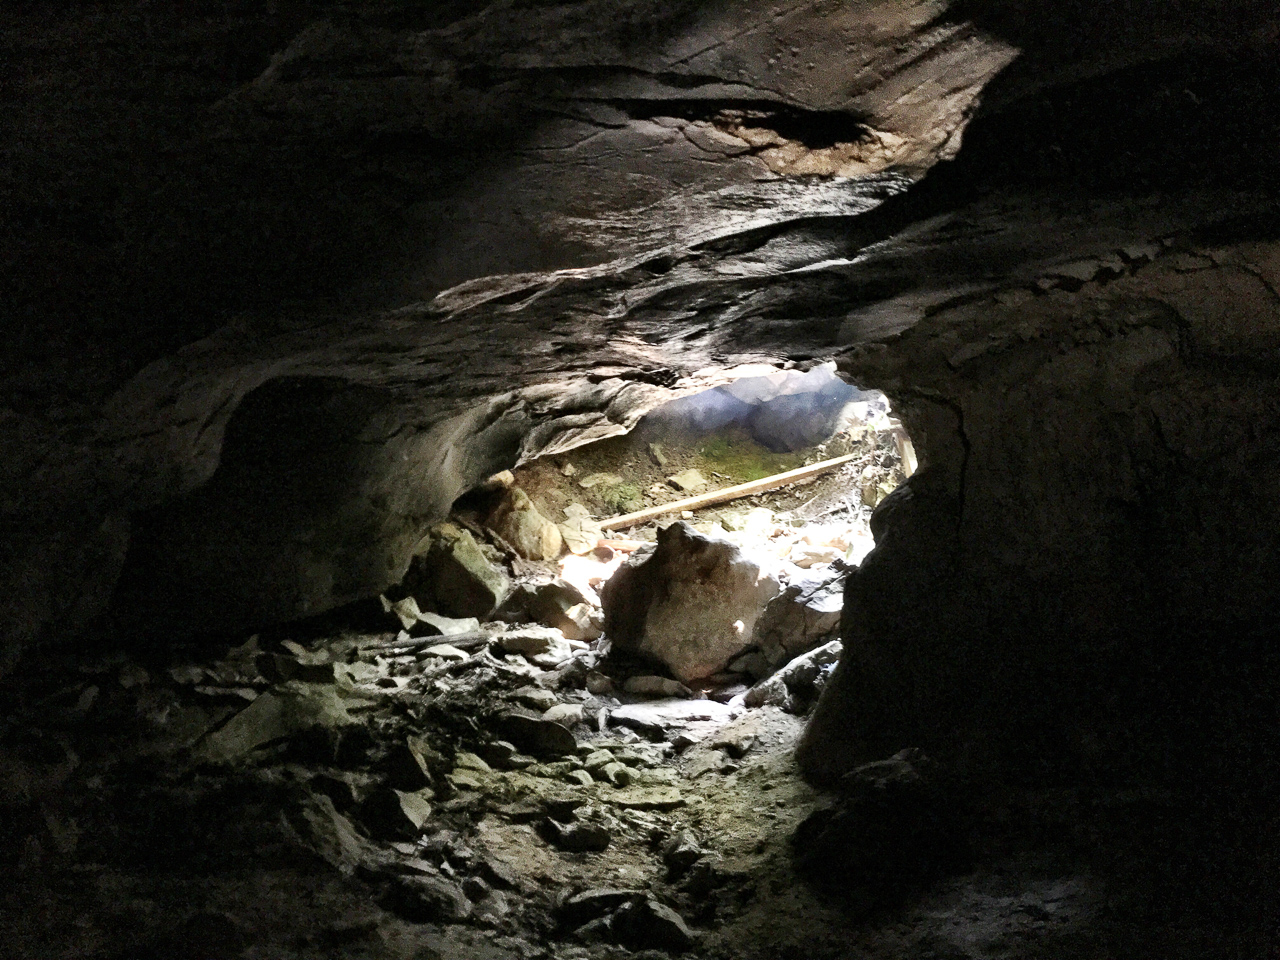 While there is something to be said for escaping back to daylight, the cave was a comfortable 54 degrees compared to 90s outside.